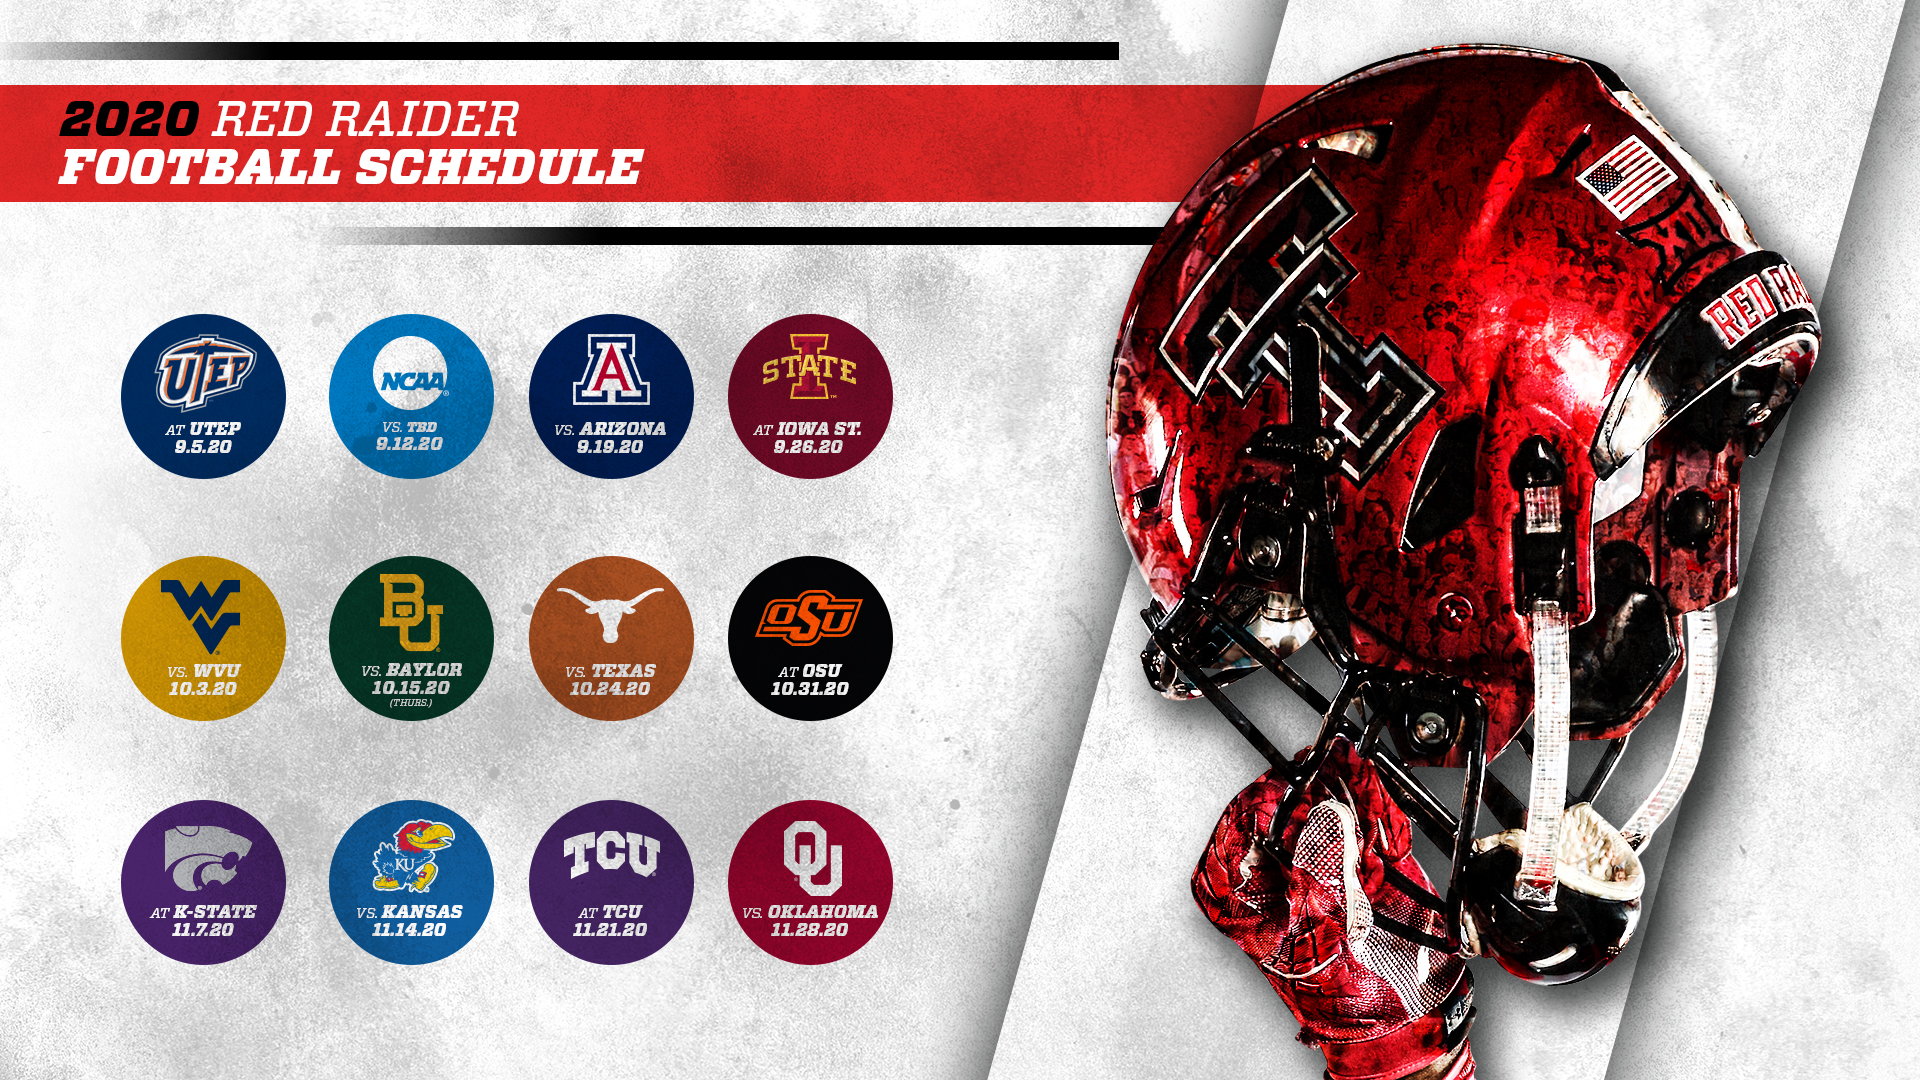 Ou Football Schedule 2020.Reds Schedule For 2020 Schedule 2020 Hermanbroodfilm